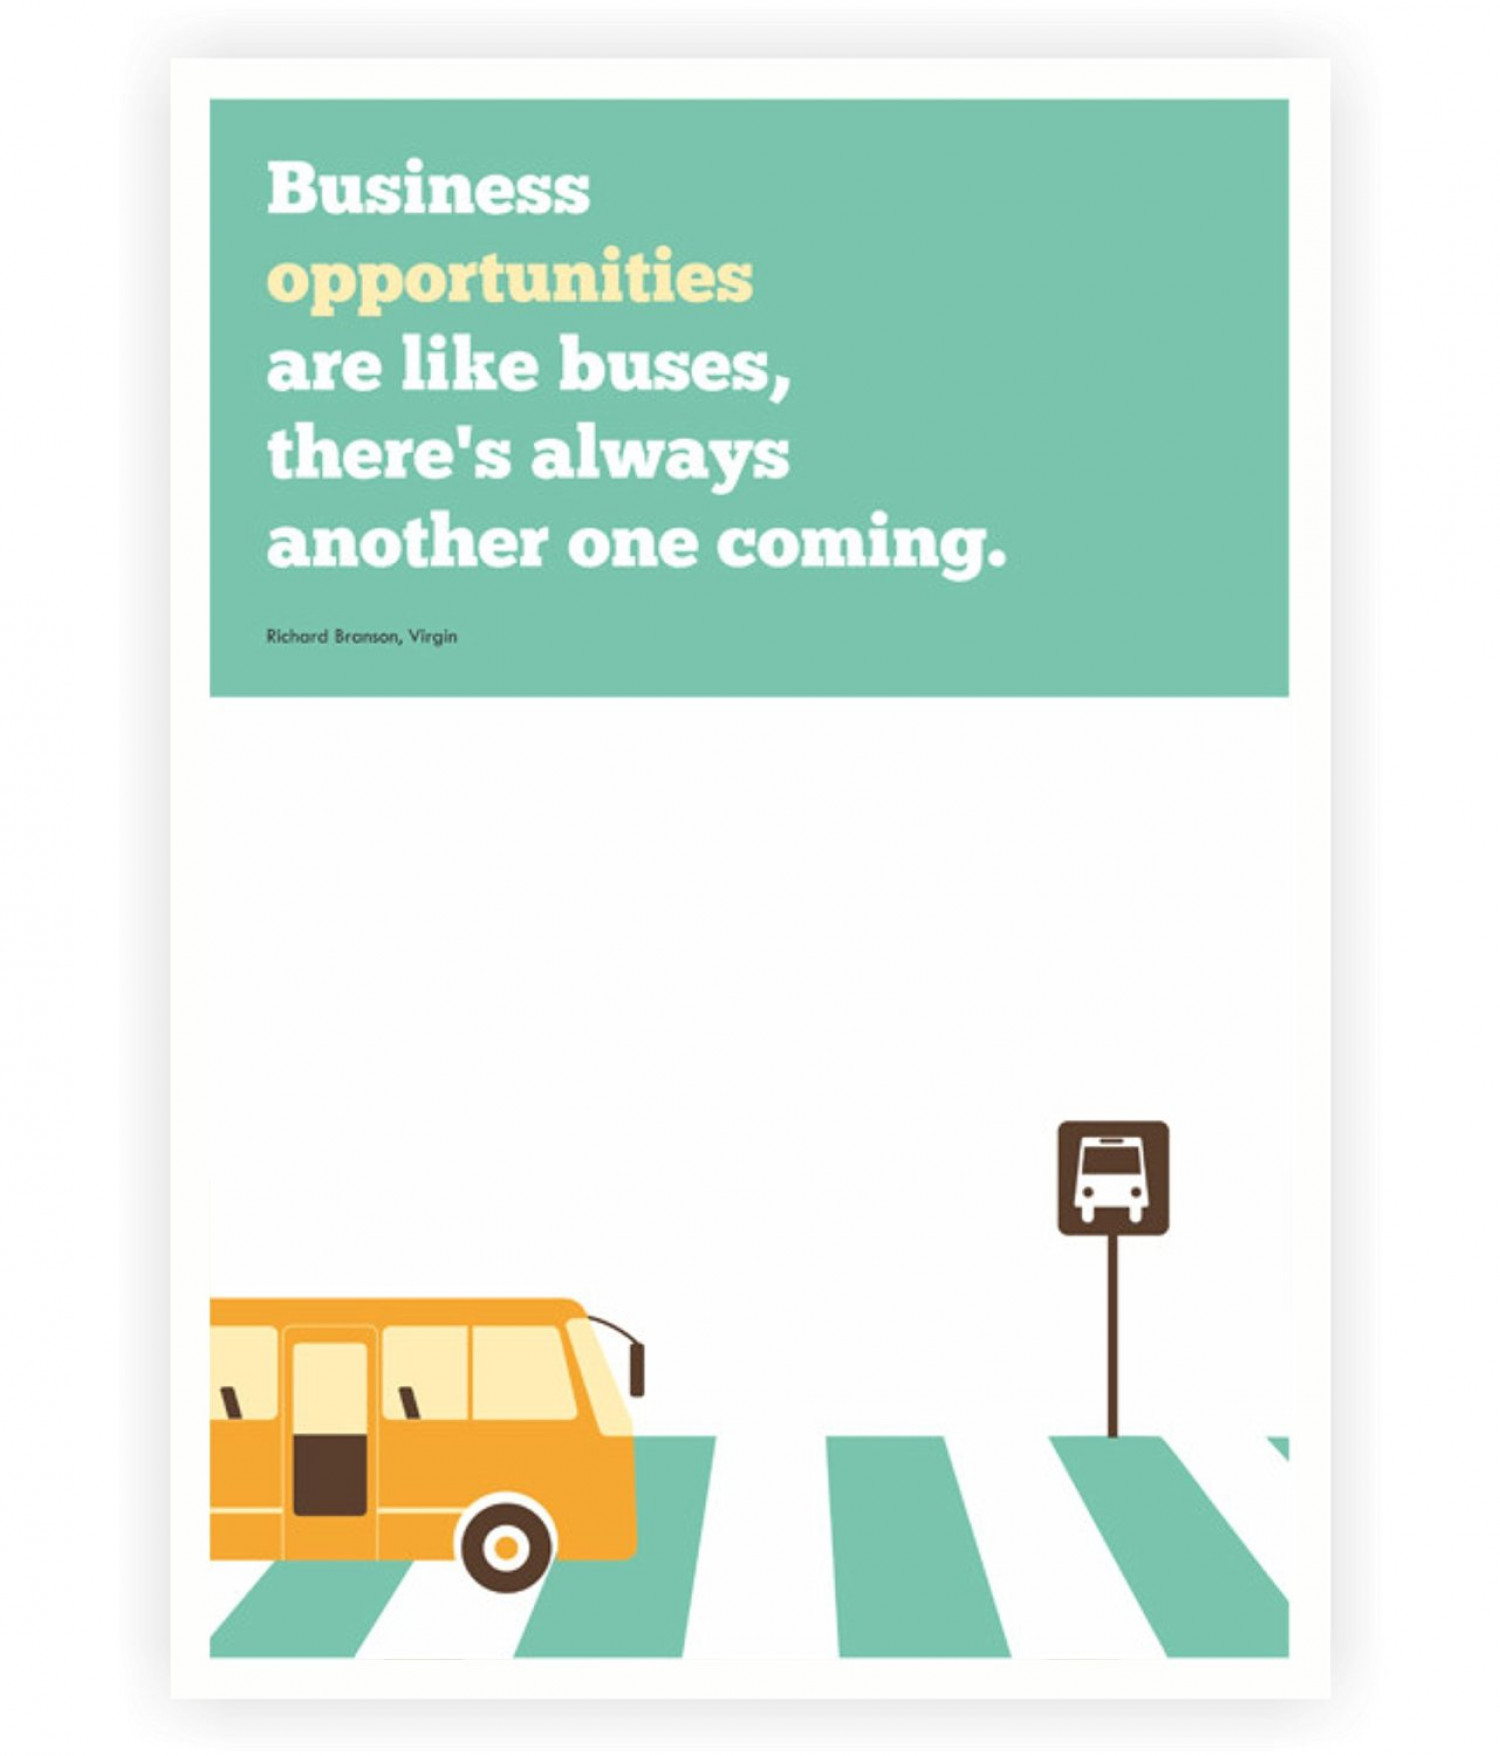 Inspirational Corporate Startup Quotes Poster Infographic